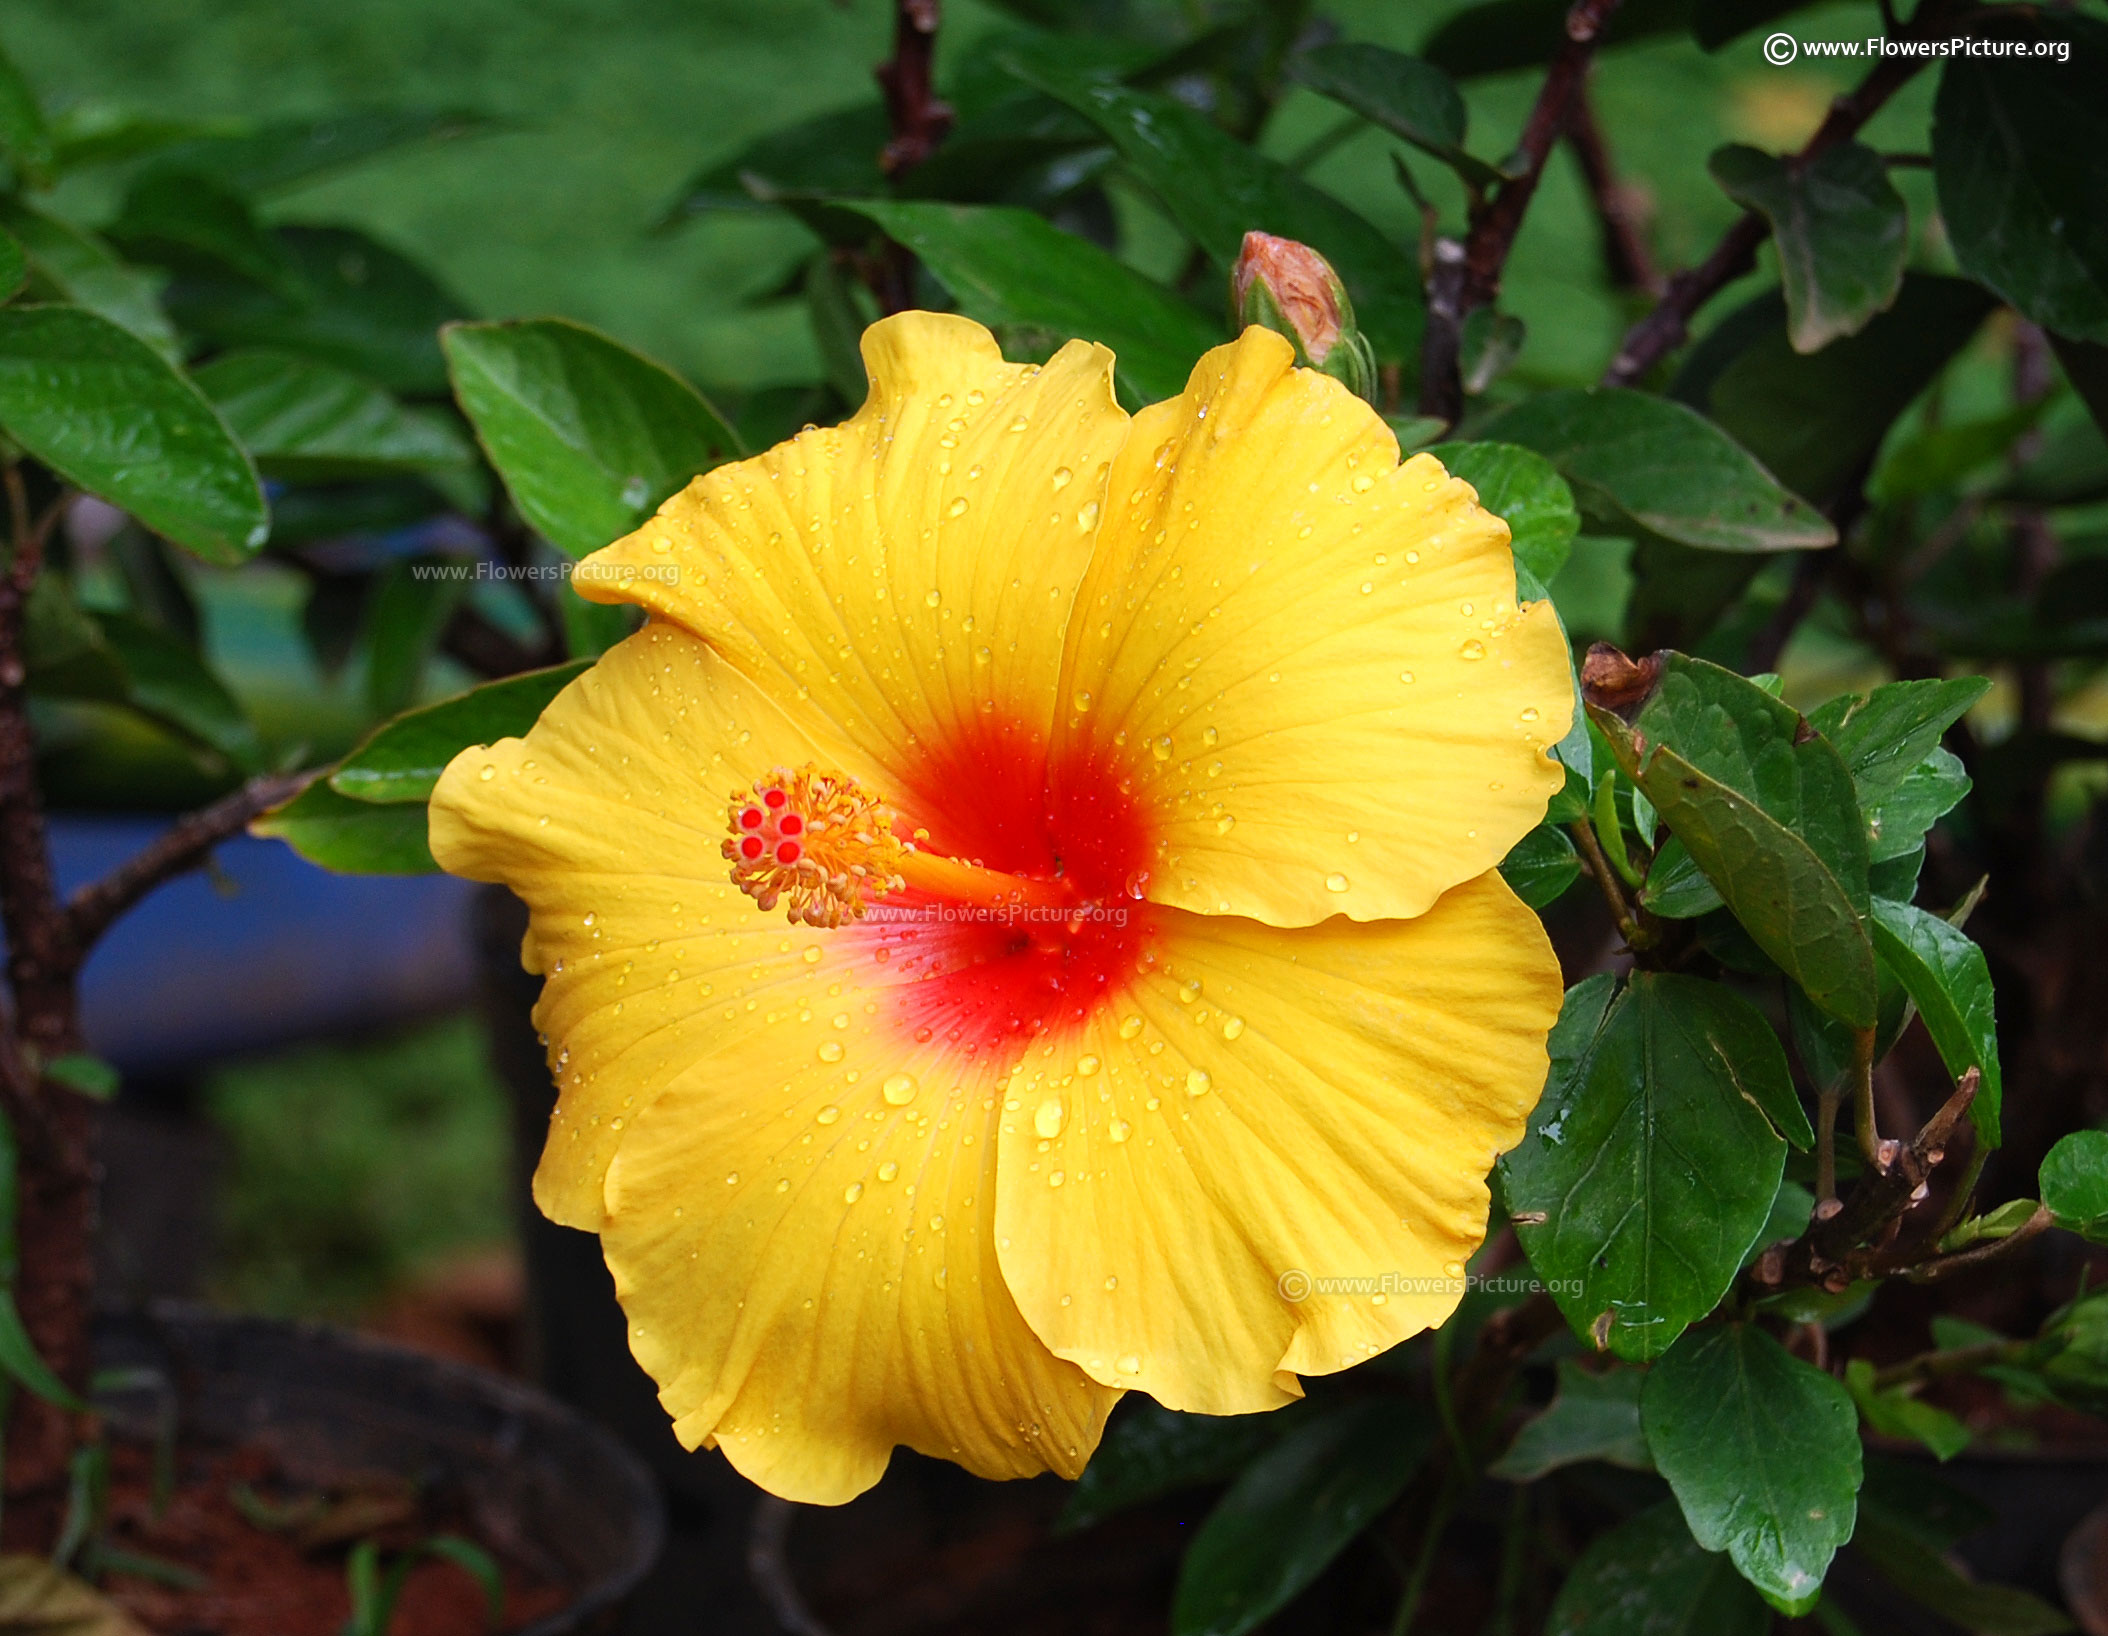 Hibiscus flower varieties hawaiian hibiscus yellow and red izmirmasajfo